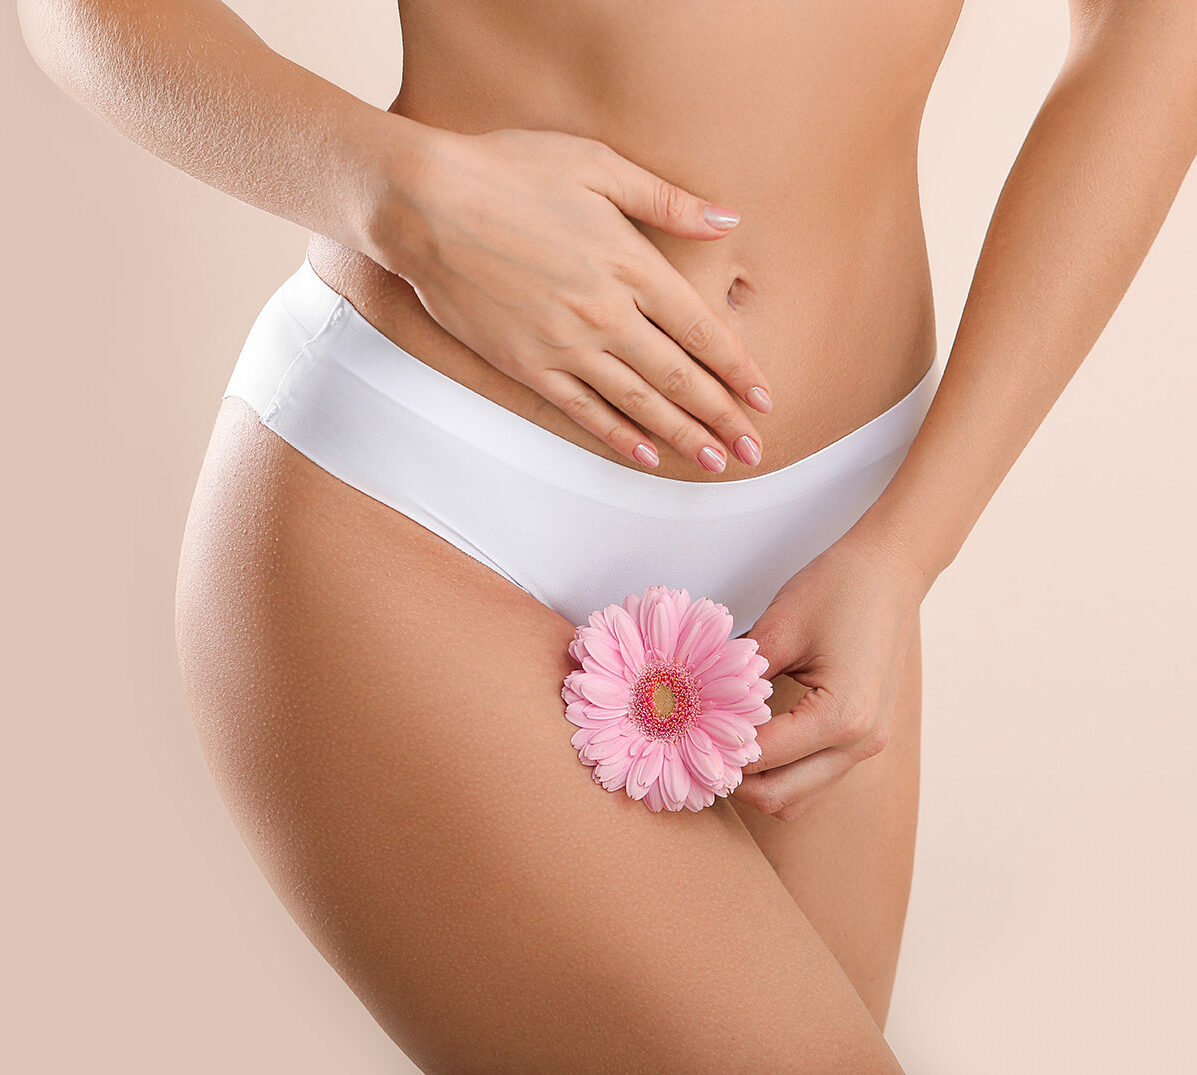 FemiLift Vaginal Rejuvenation Services New Jersey